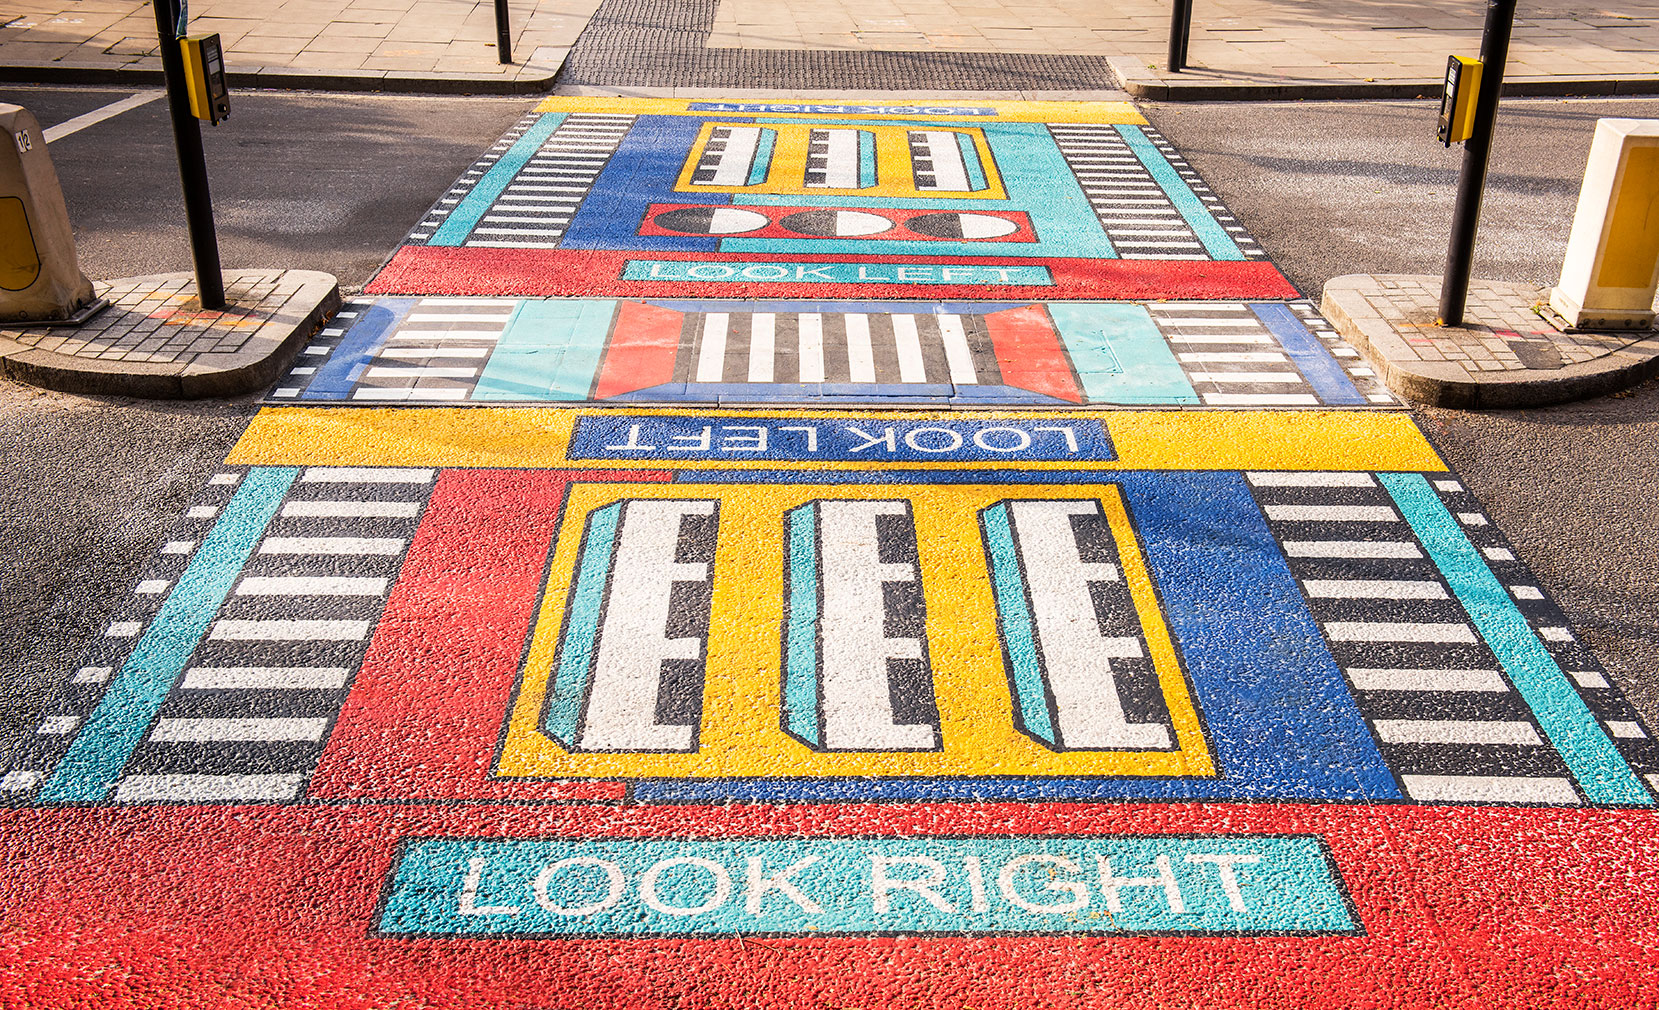 There's an eye-catching new addition to West London's streetscape – French designer Camille Walala has installed a pair of colourful patterned crosswalks at White City Place.